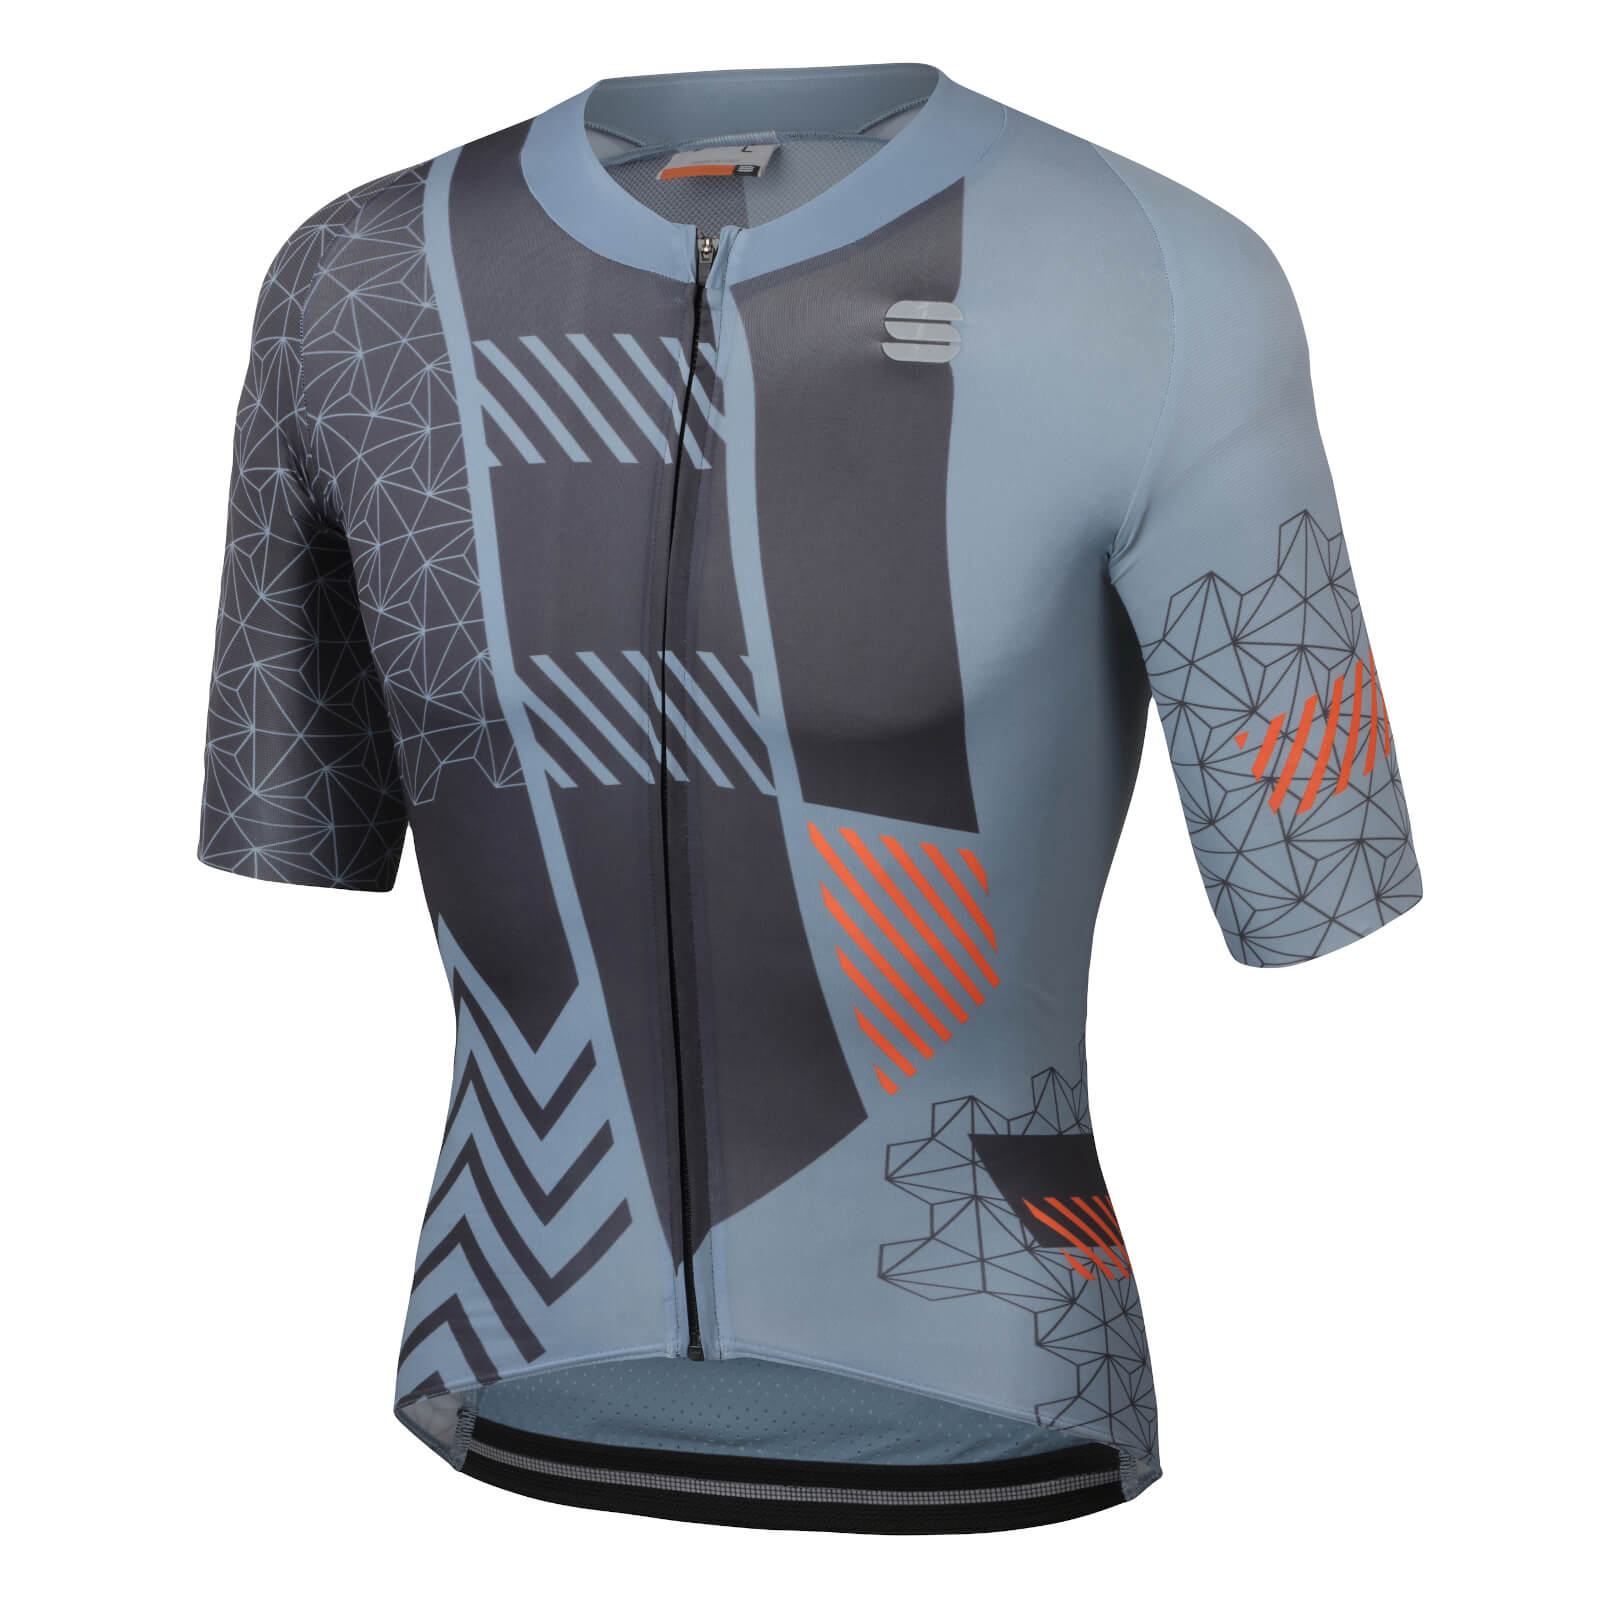 Sportful BodyFit Pro Bomber Jersey - M - Cement/Anthracite